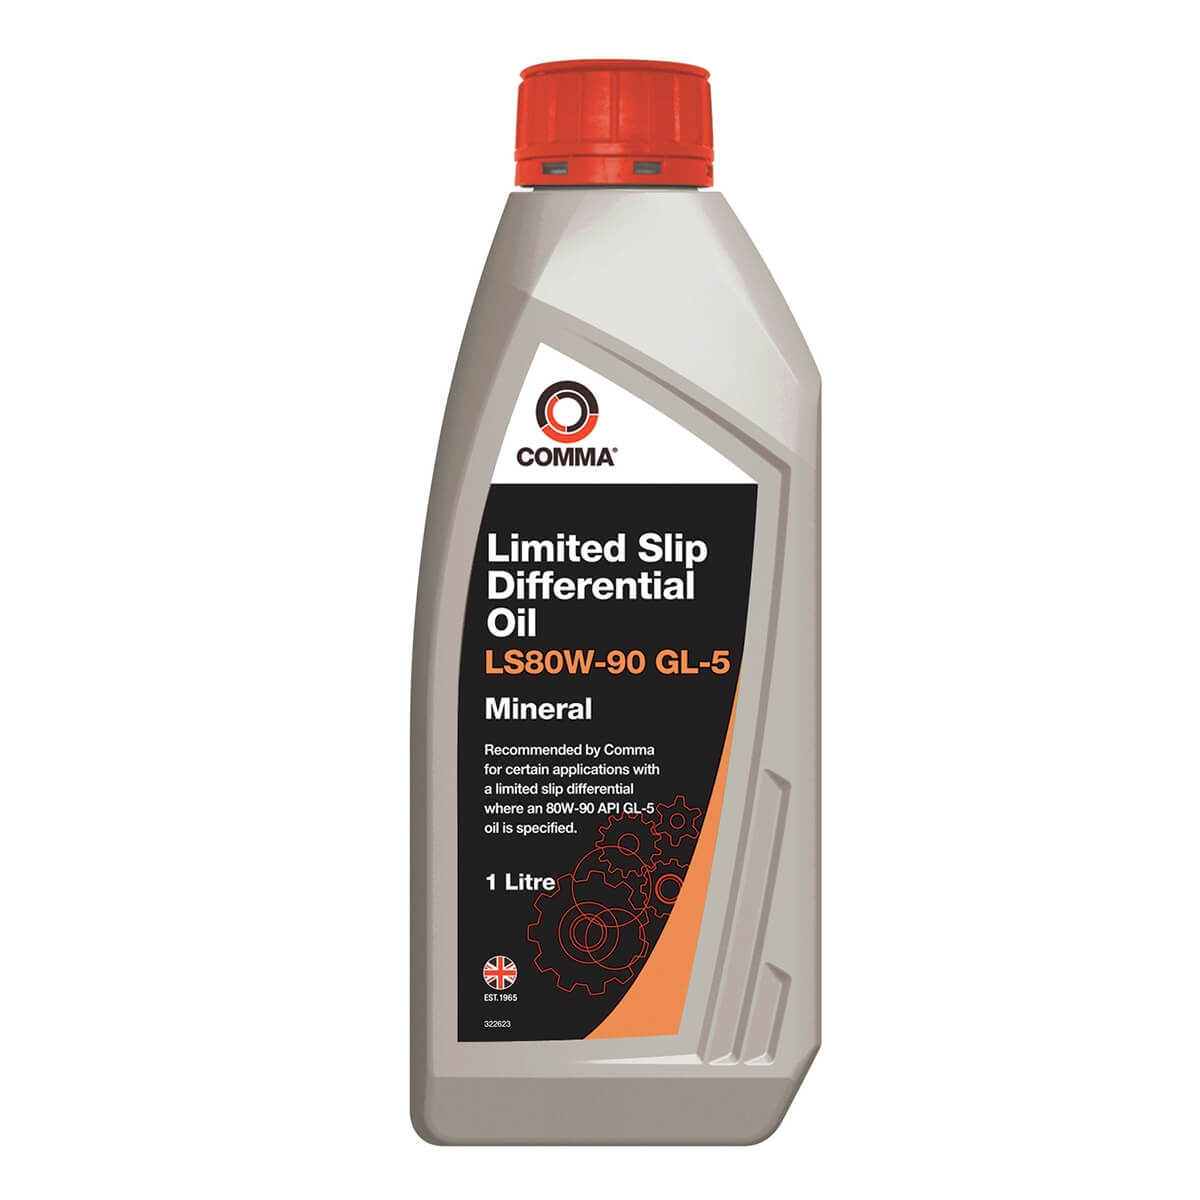 CHRYSLER VOYAGER IV Diff Gear Oil